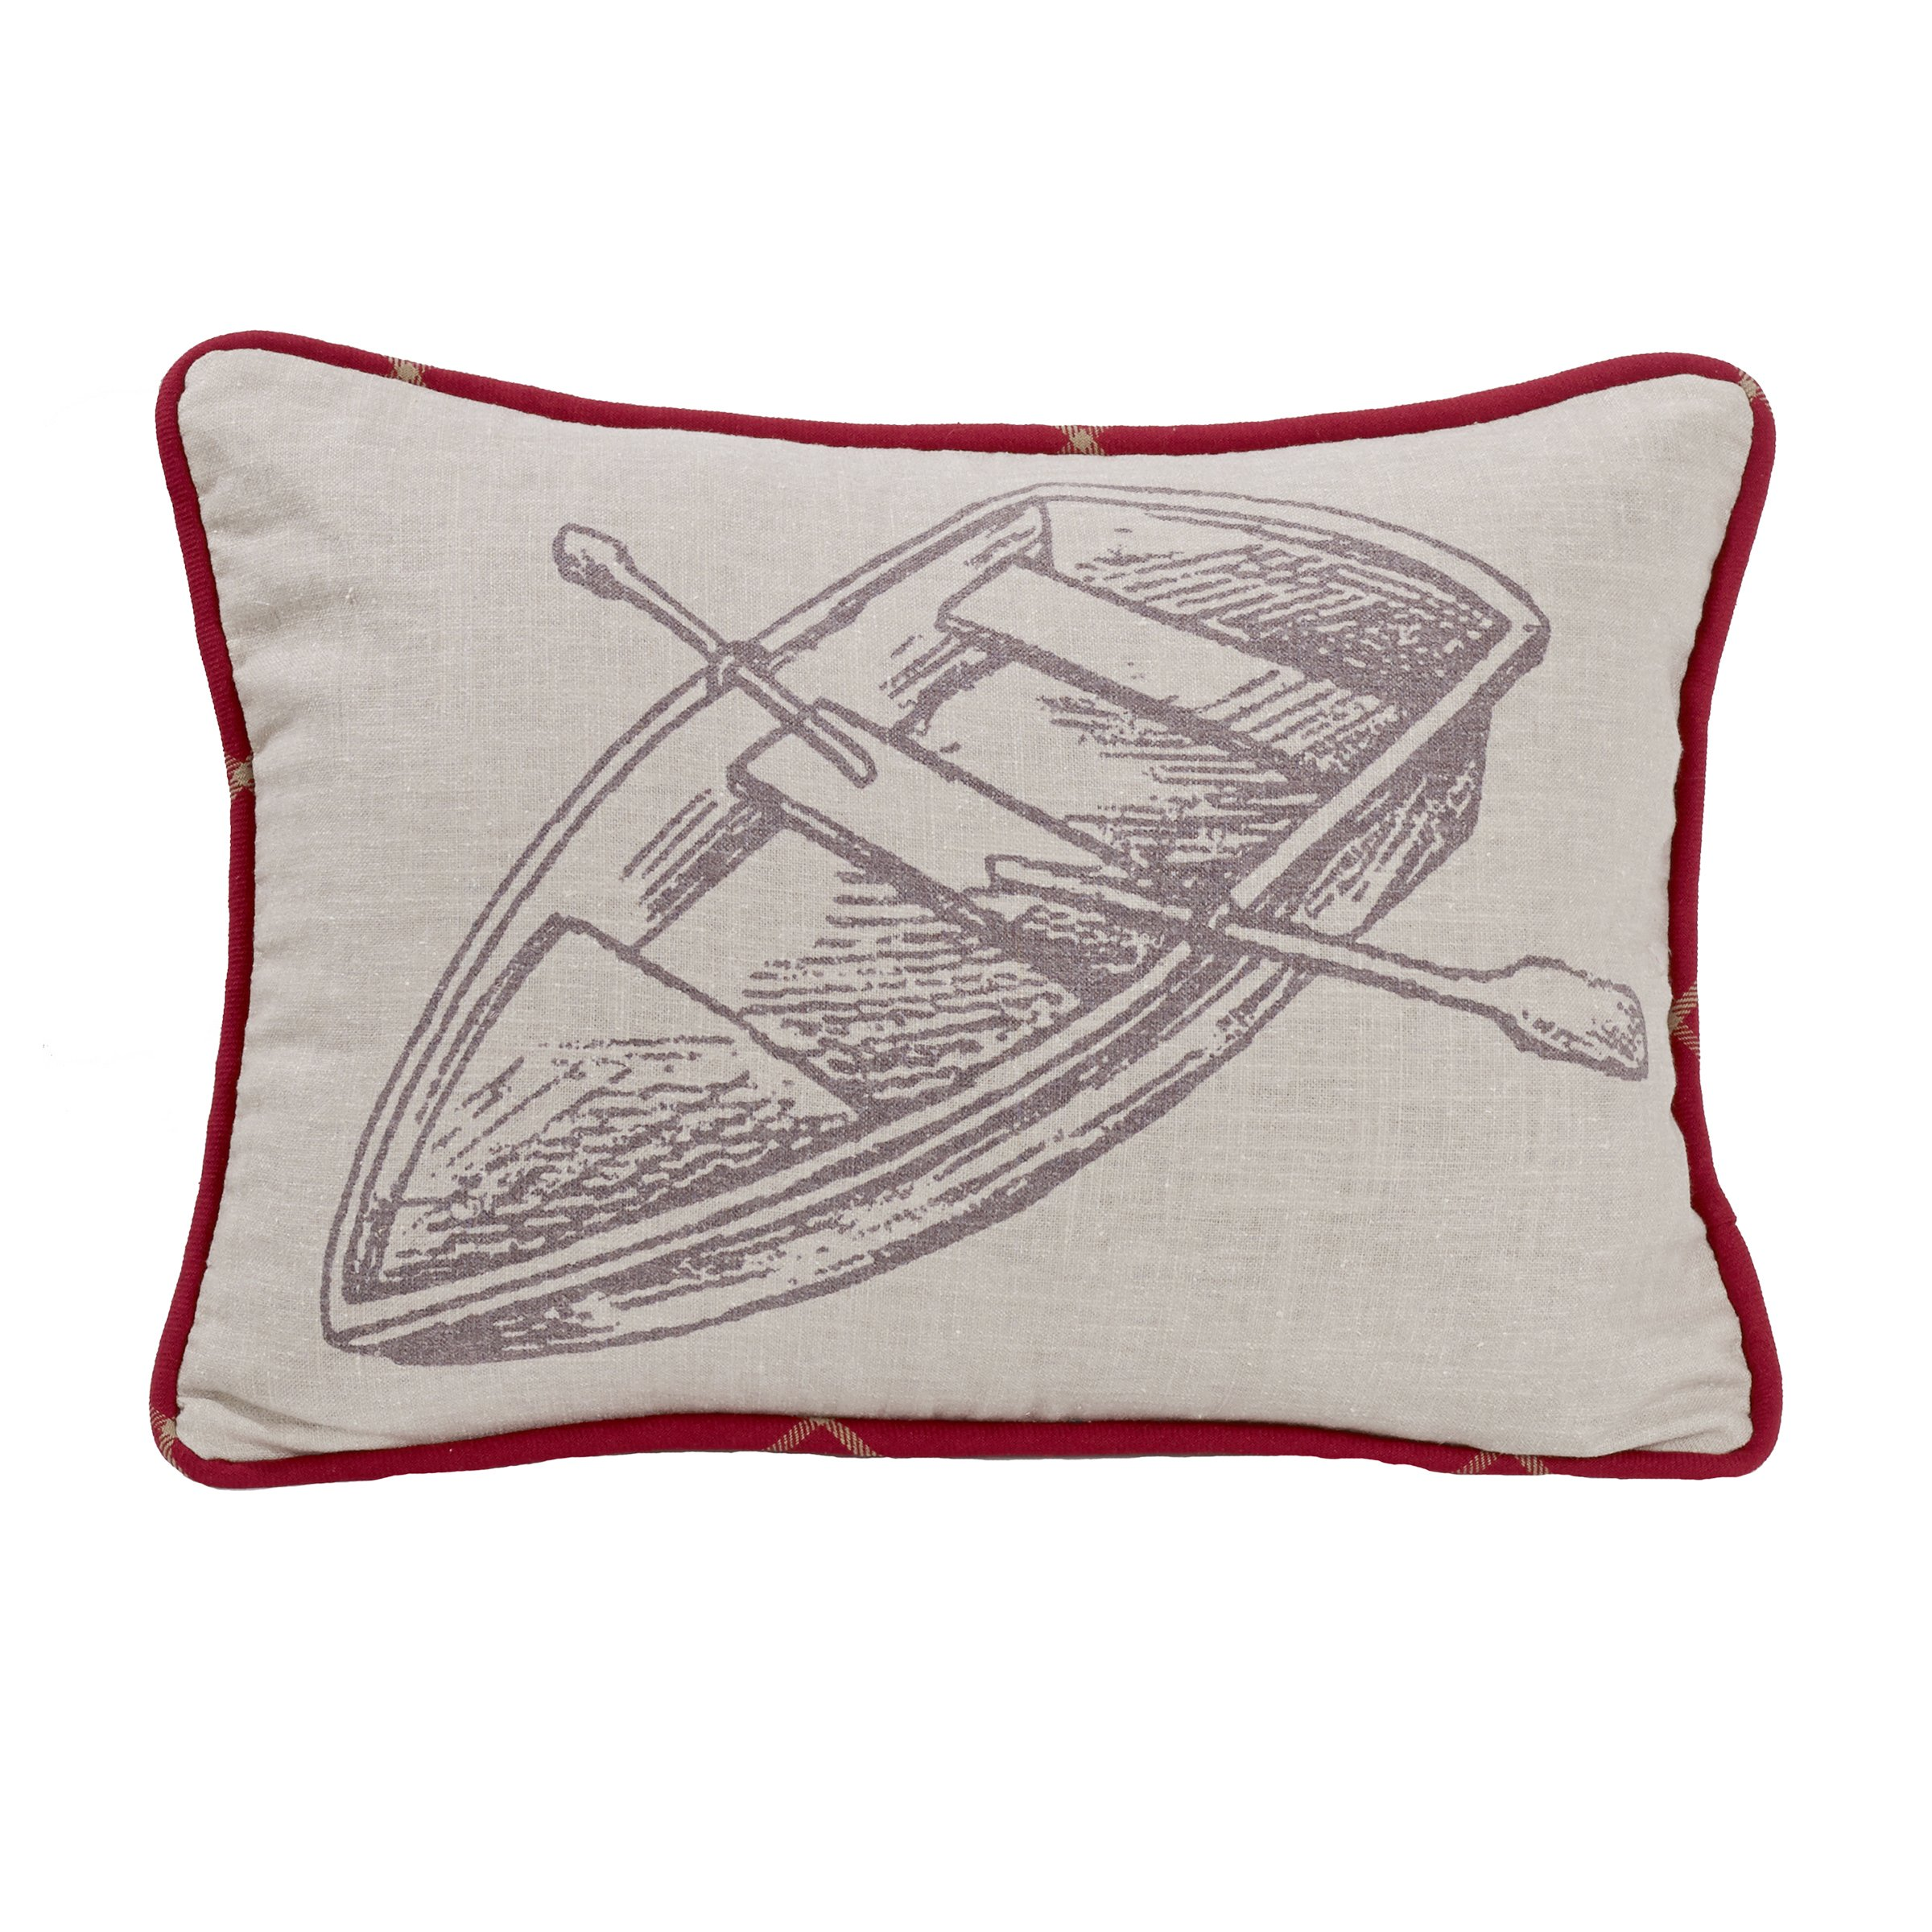 HiEnd Accents South Haven Rowboat Pillow by HiEnd Accents